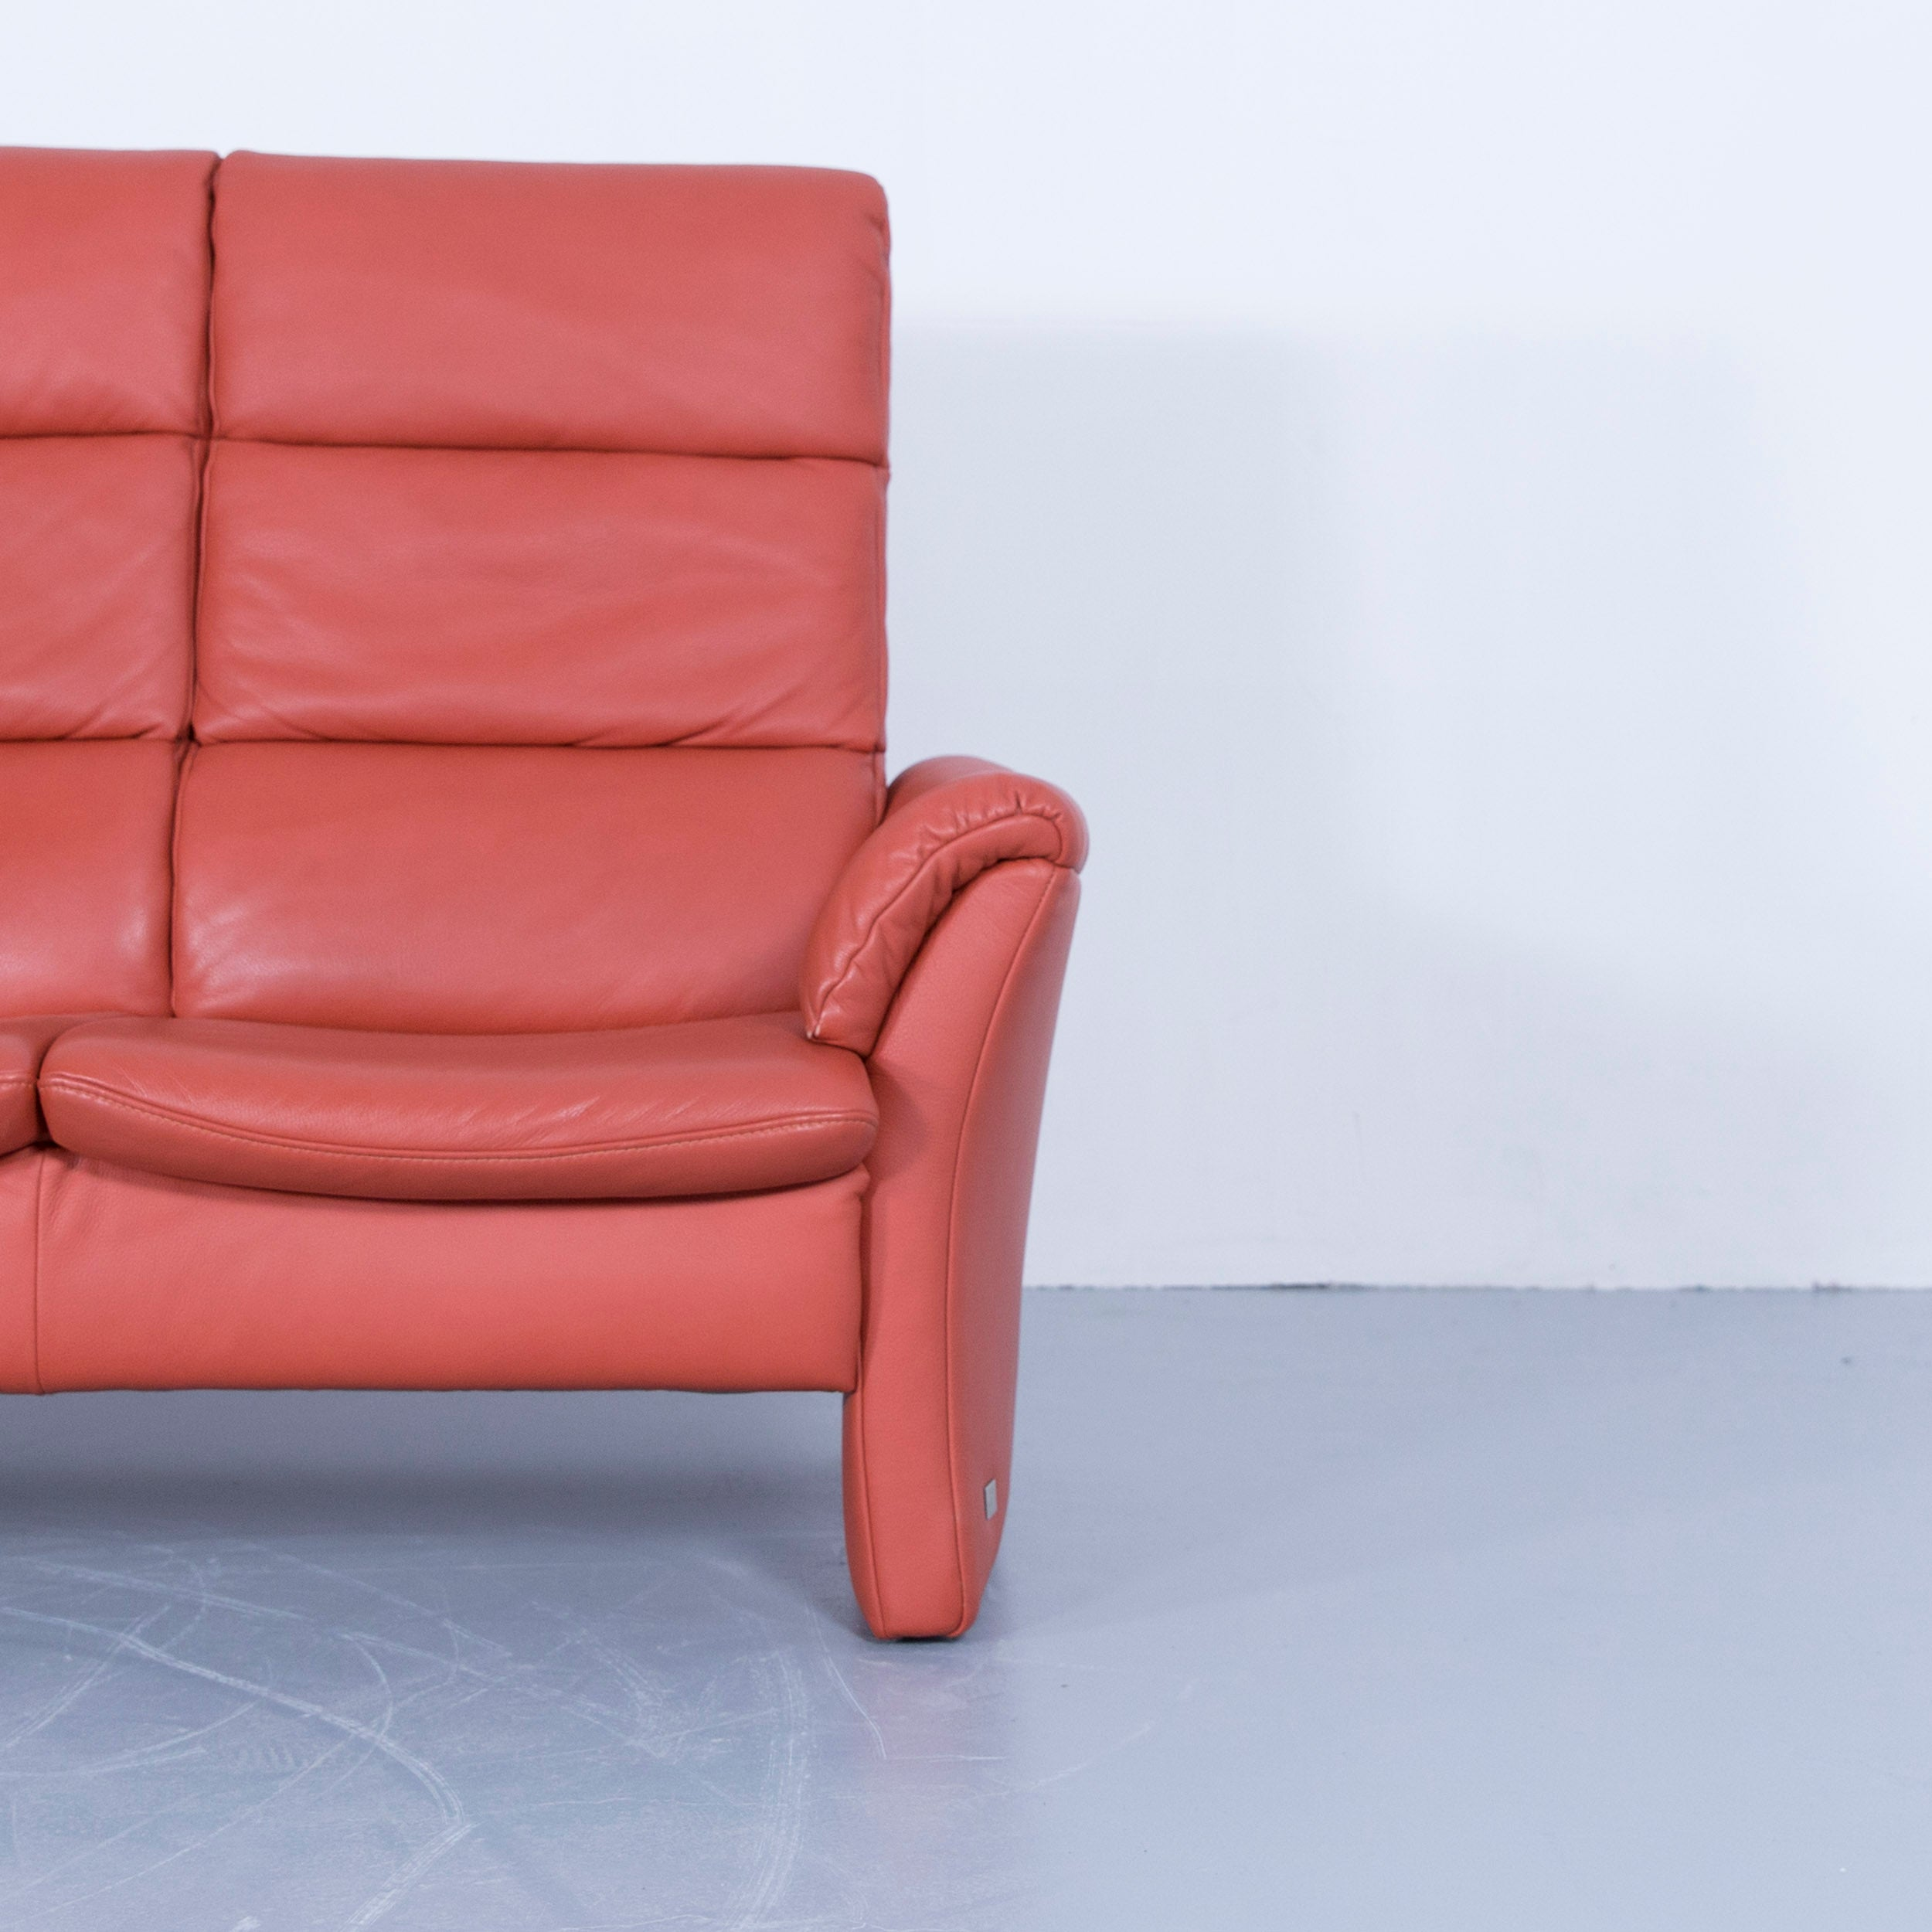 Himolla Relax Sofa 2 5 Sitzer Himolla Zerostress Three Seat Sofa Leather Orange Relax One Seat Couch